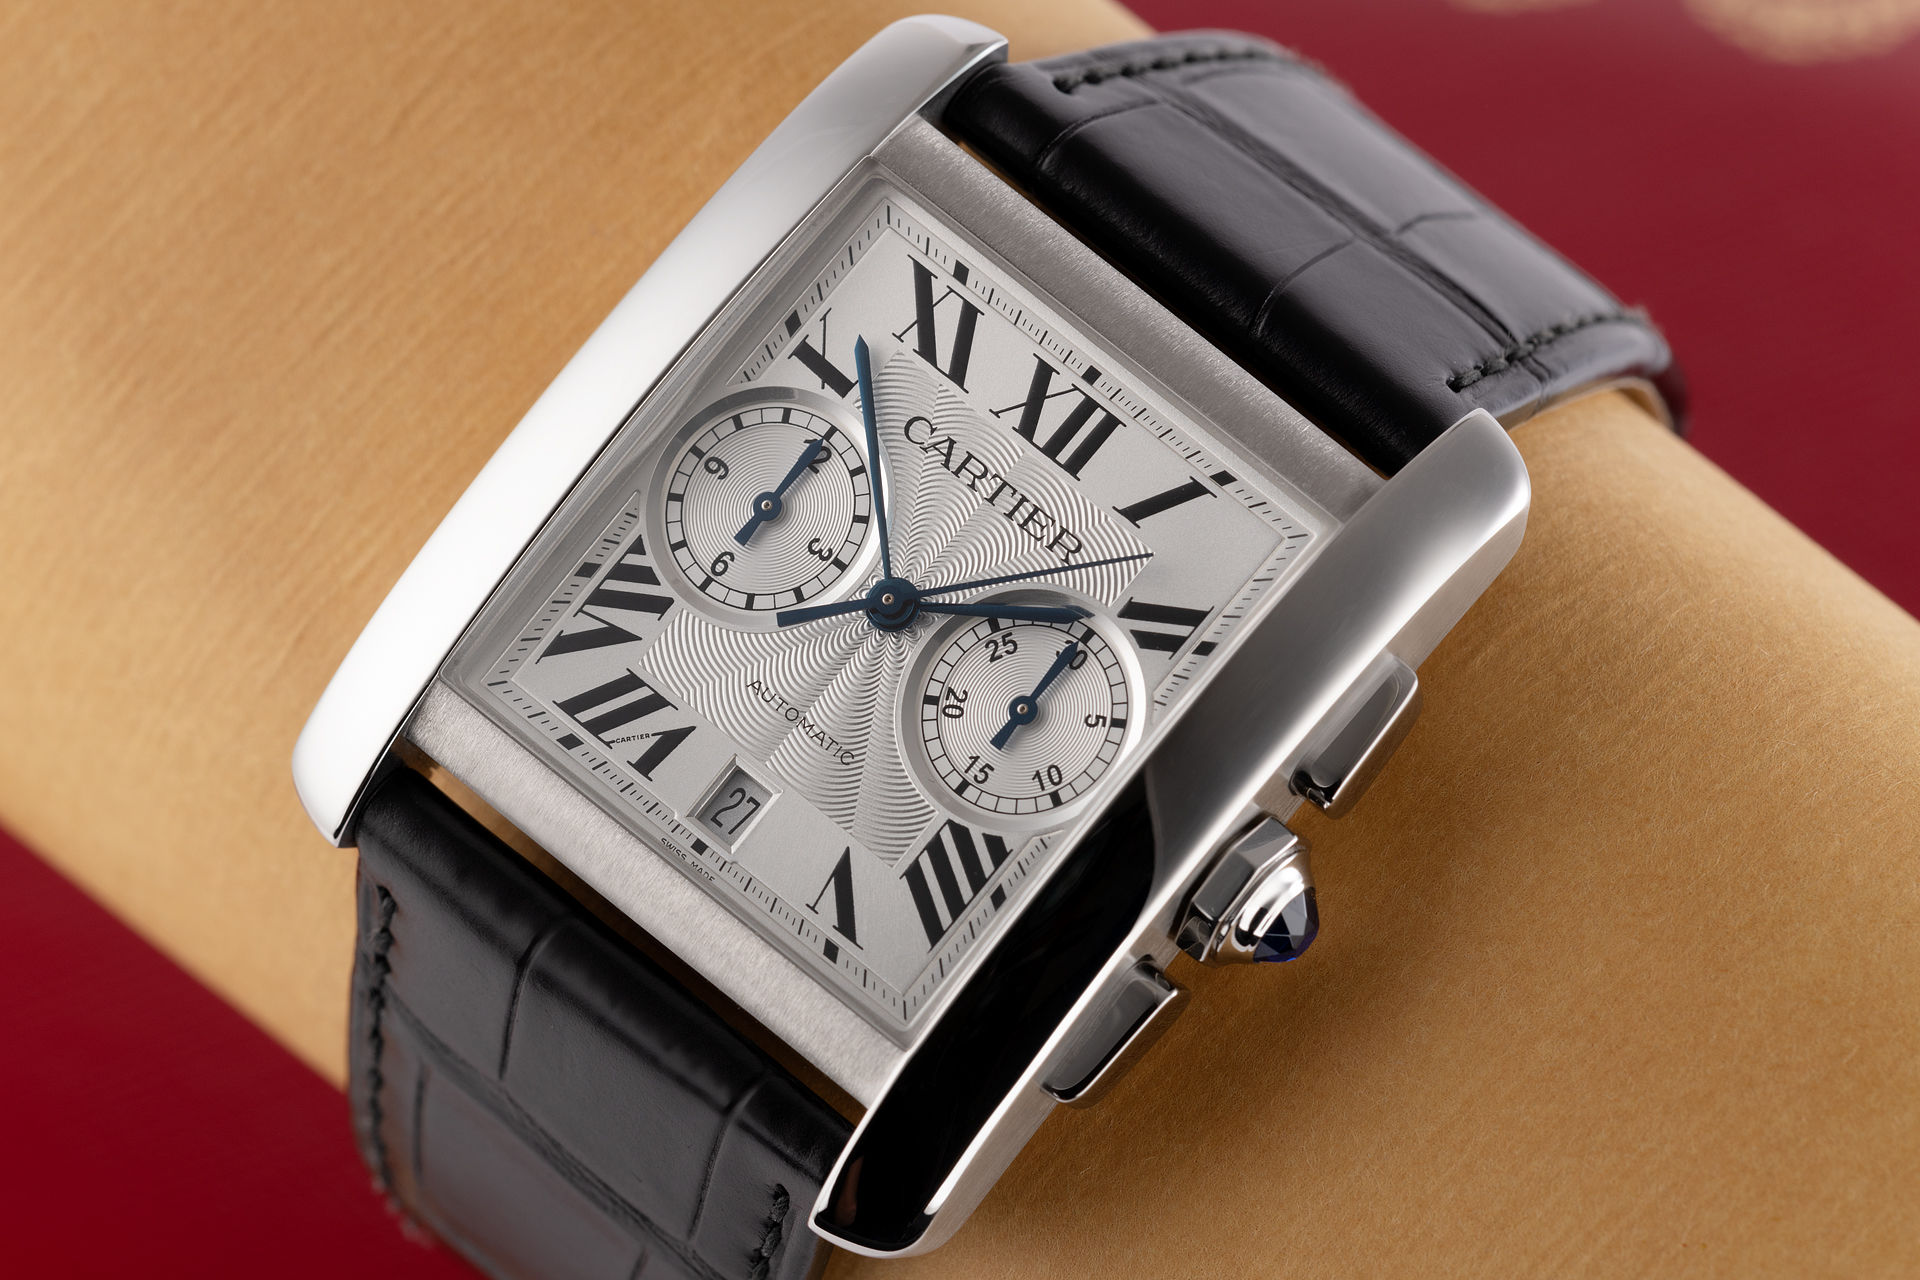 Tag Heuer Uk >> Cartier Tank MC Chronograph Watches | ref W5330007 | Cartier International Warranty | The Watch Club